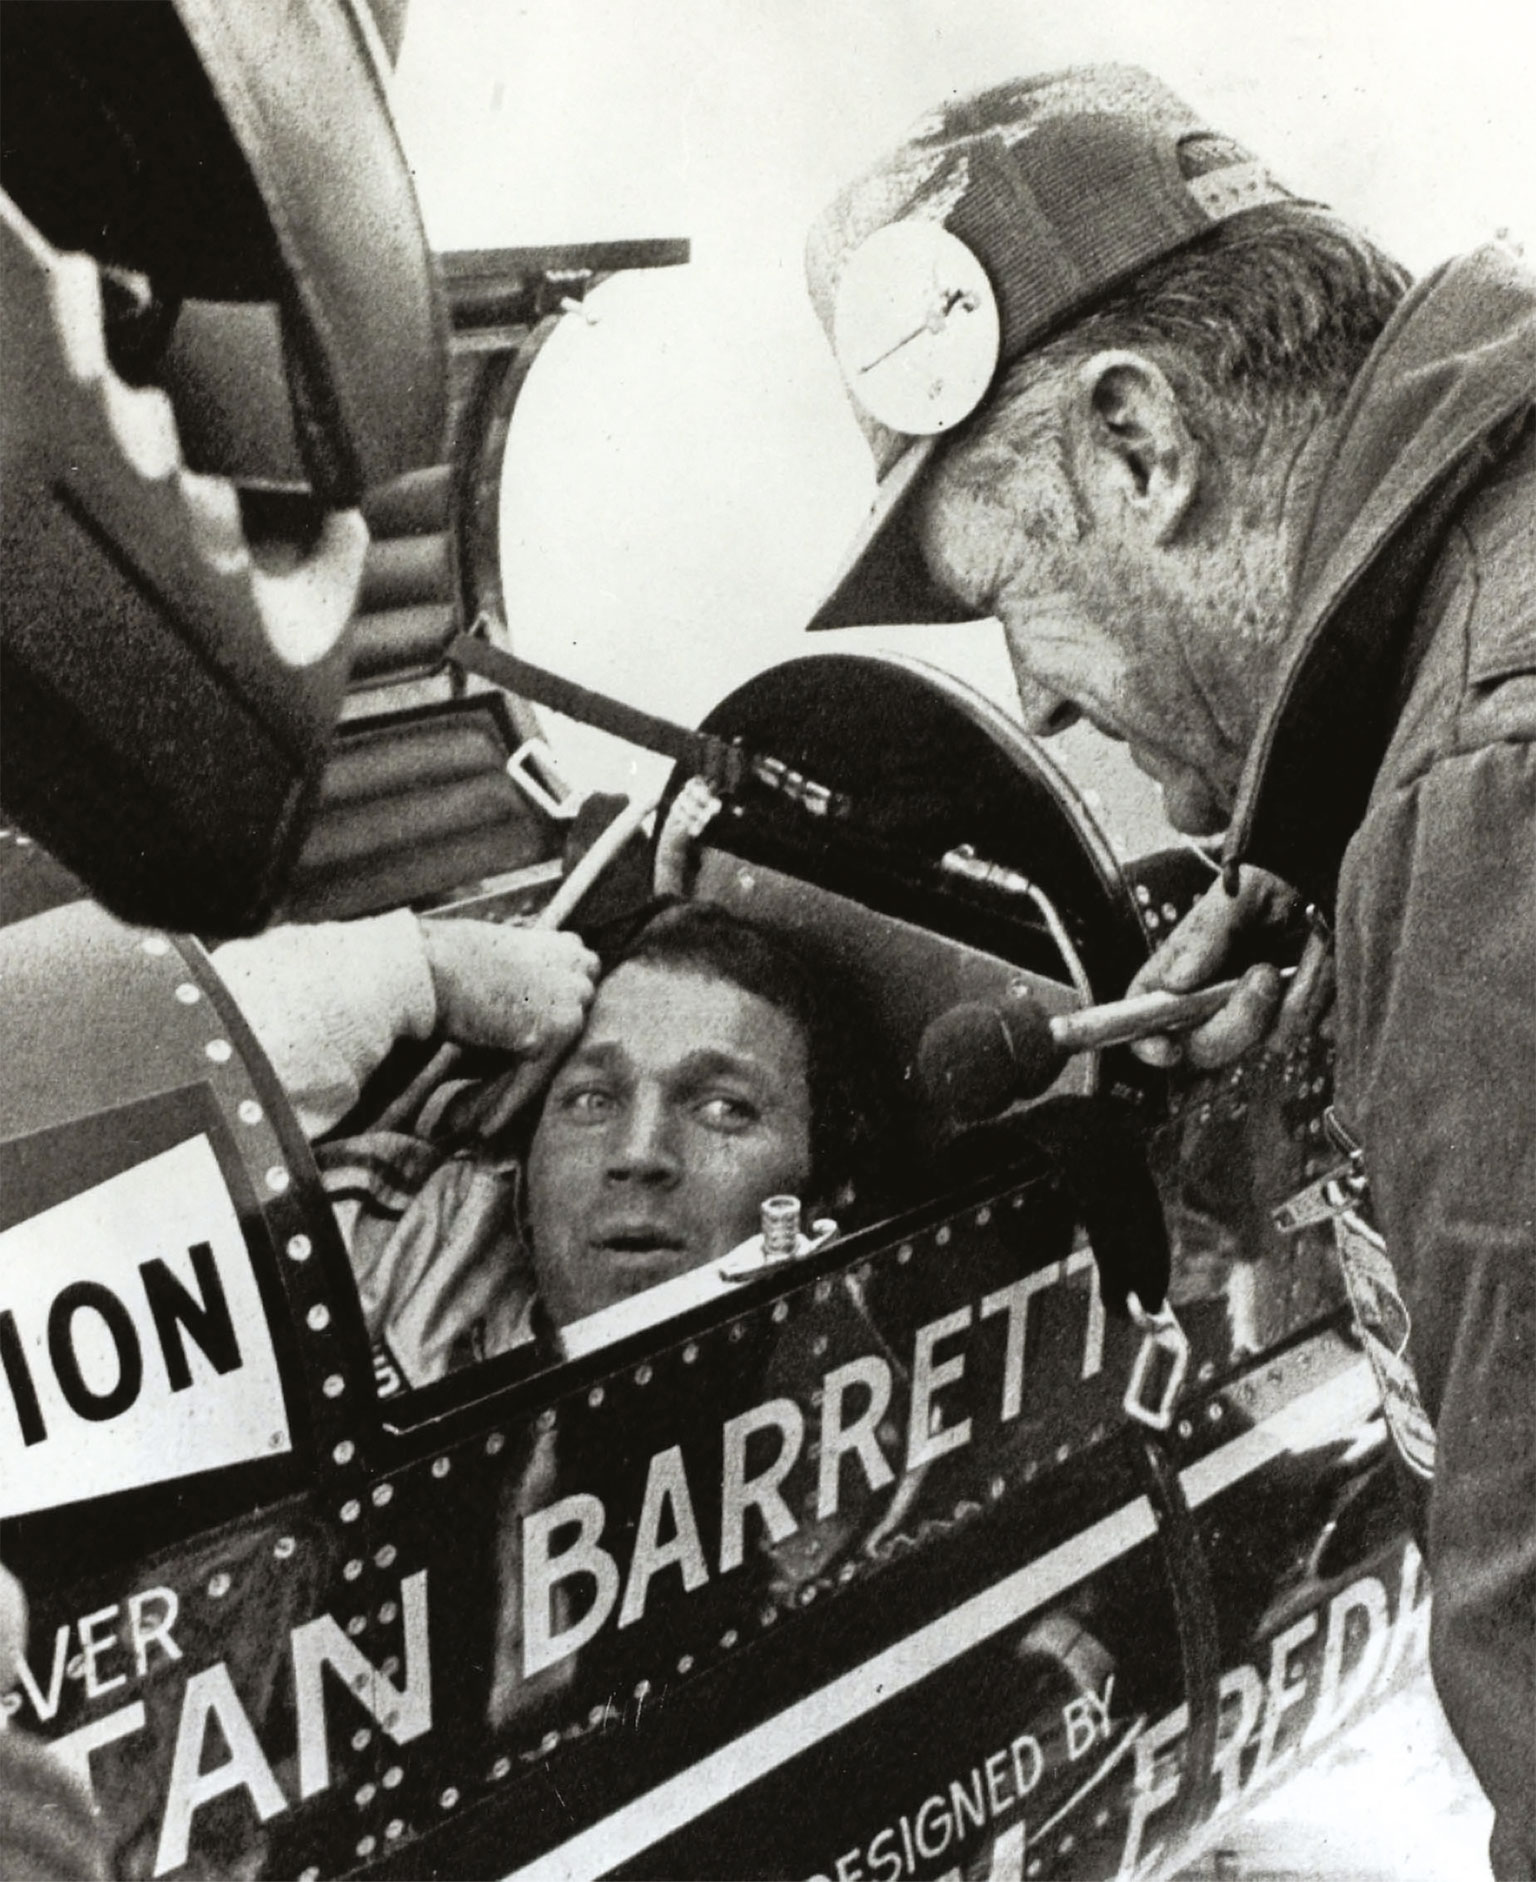 Stan Barrett was a film stunt man who had never driven faster than 150mph when he joined the Rocket record bid